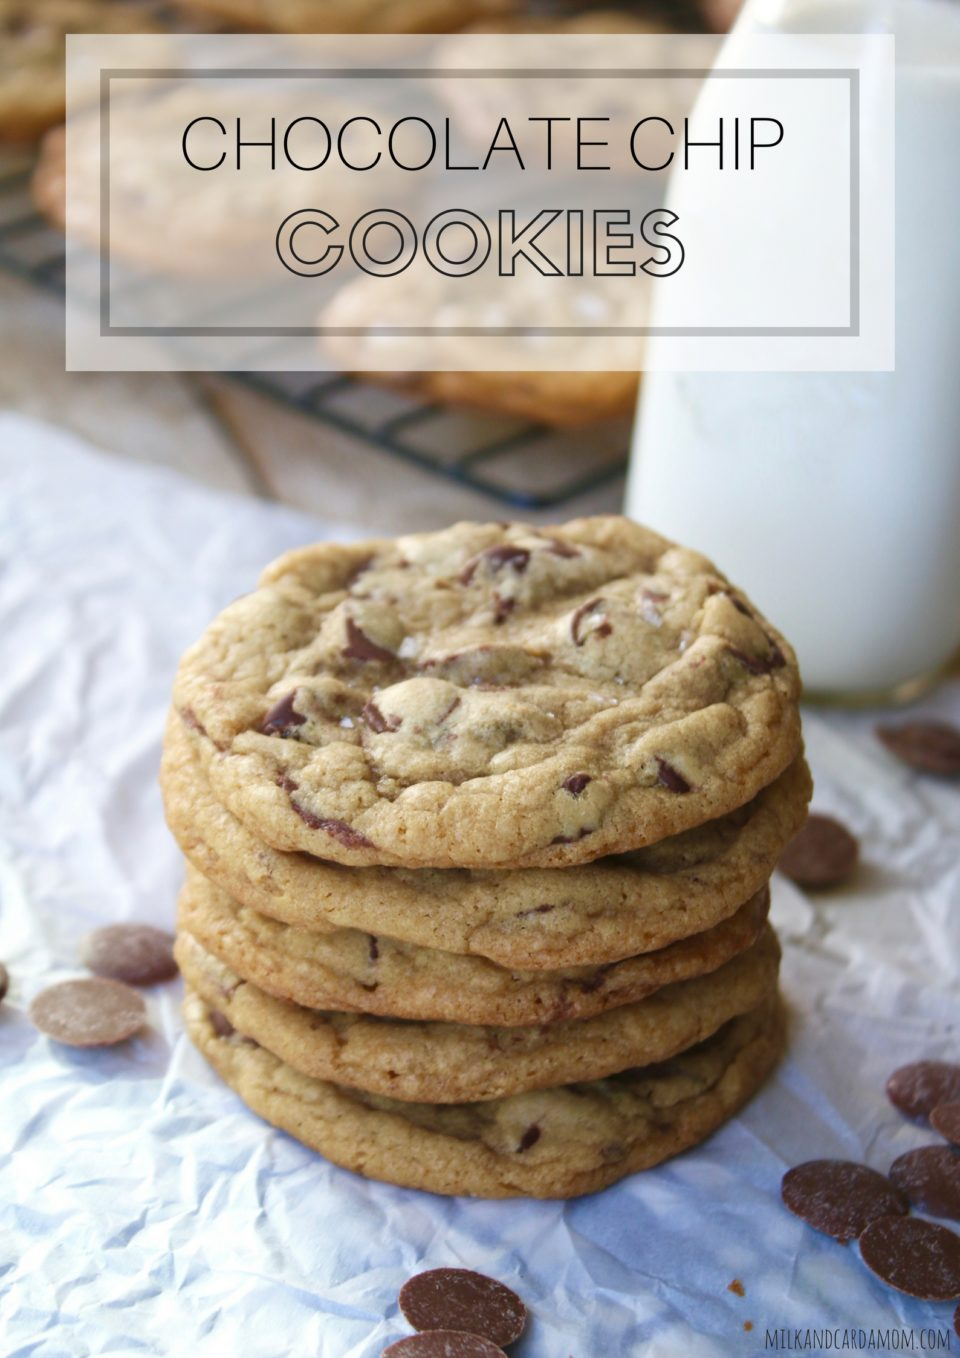 Making Chocolate Chip Cookies With Cake Flour